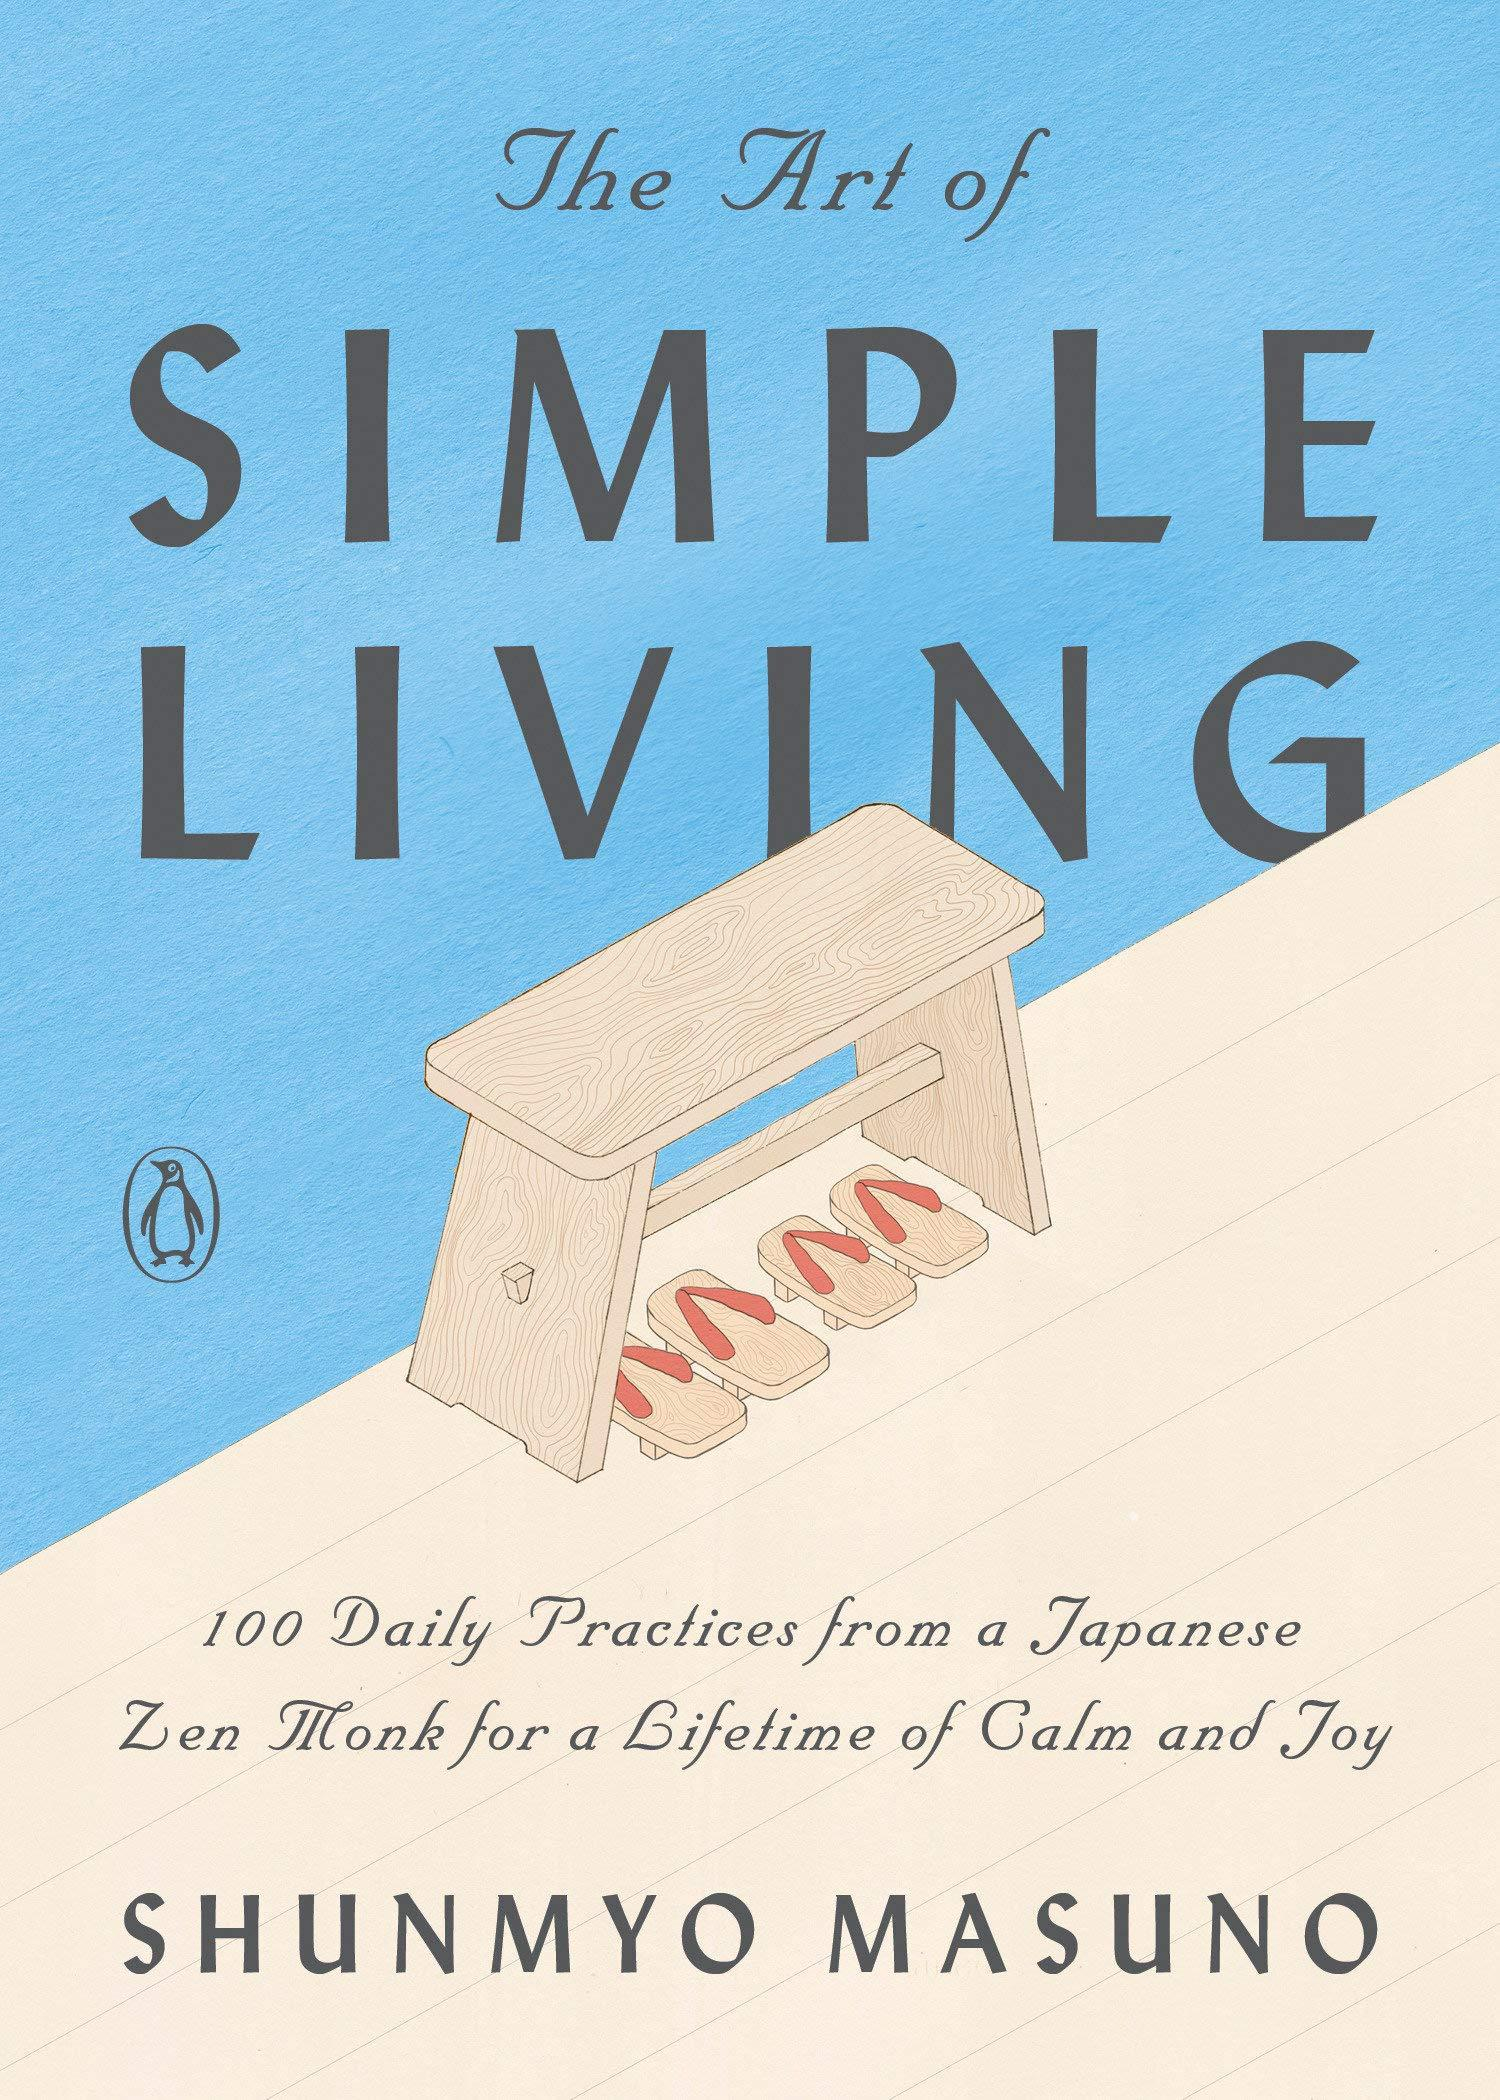 The Art of Simple Living: 100 Daily Practices from a Japanese Zen Monk for a Lifetime of Calm and Joy by  Shunmyo Masuno